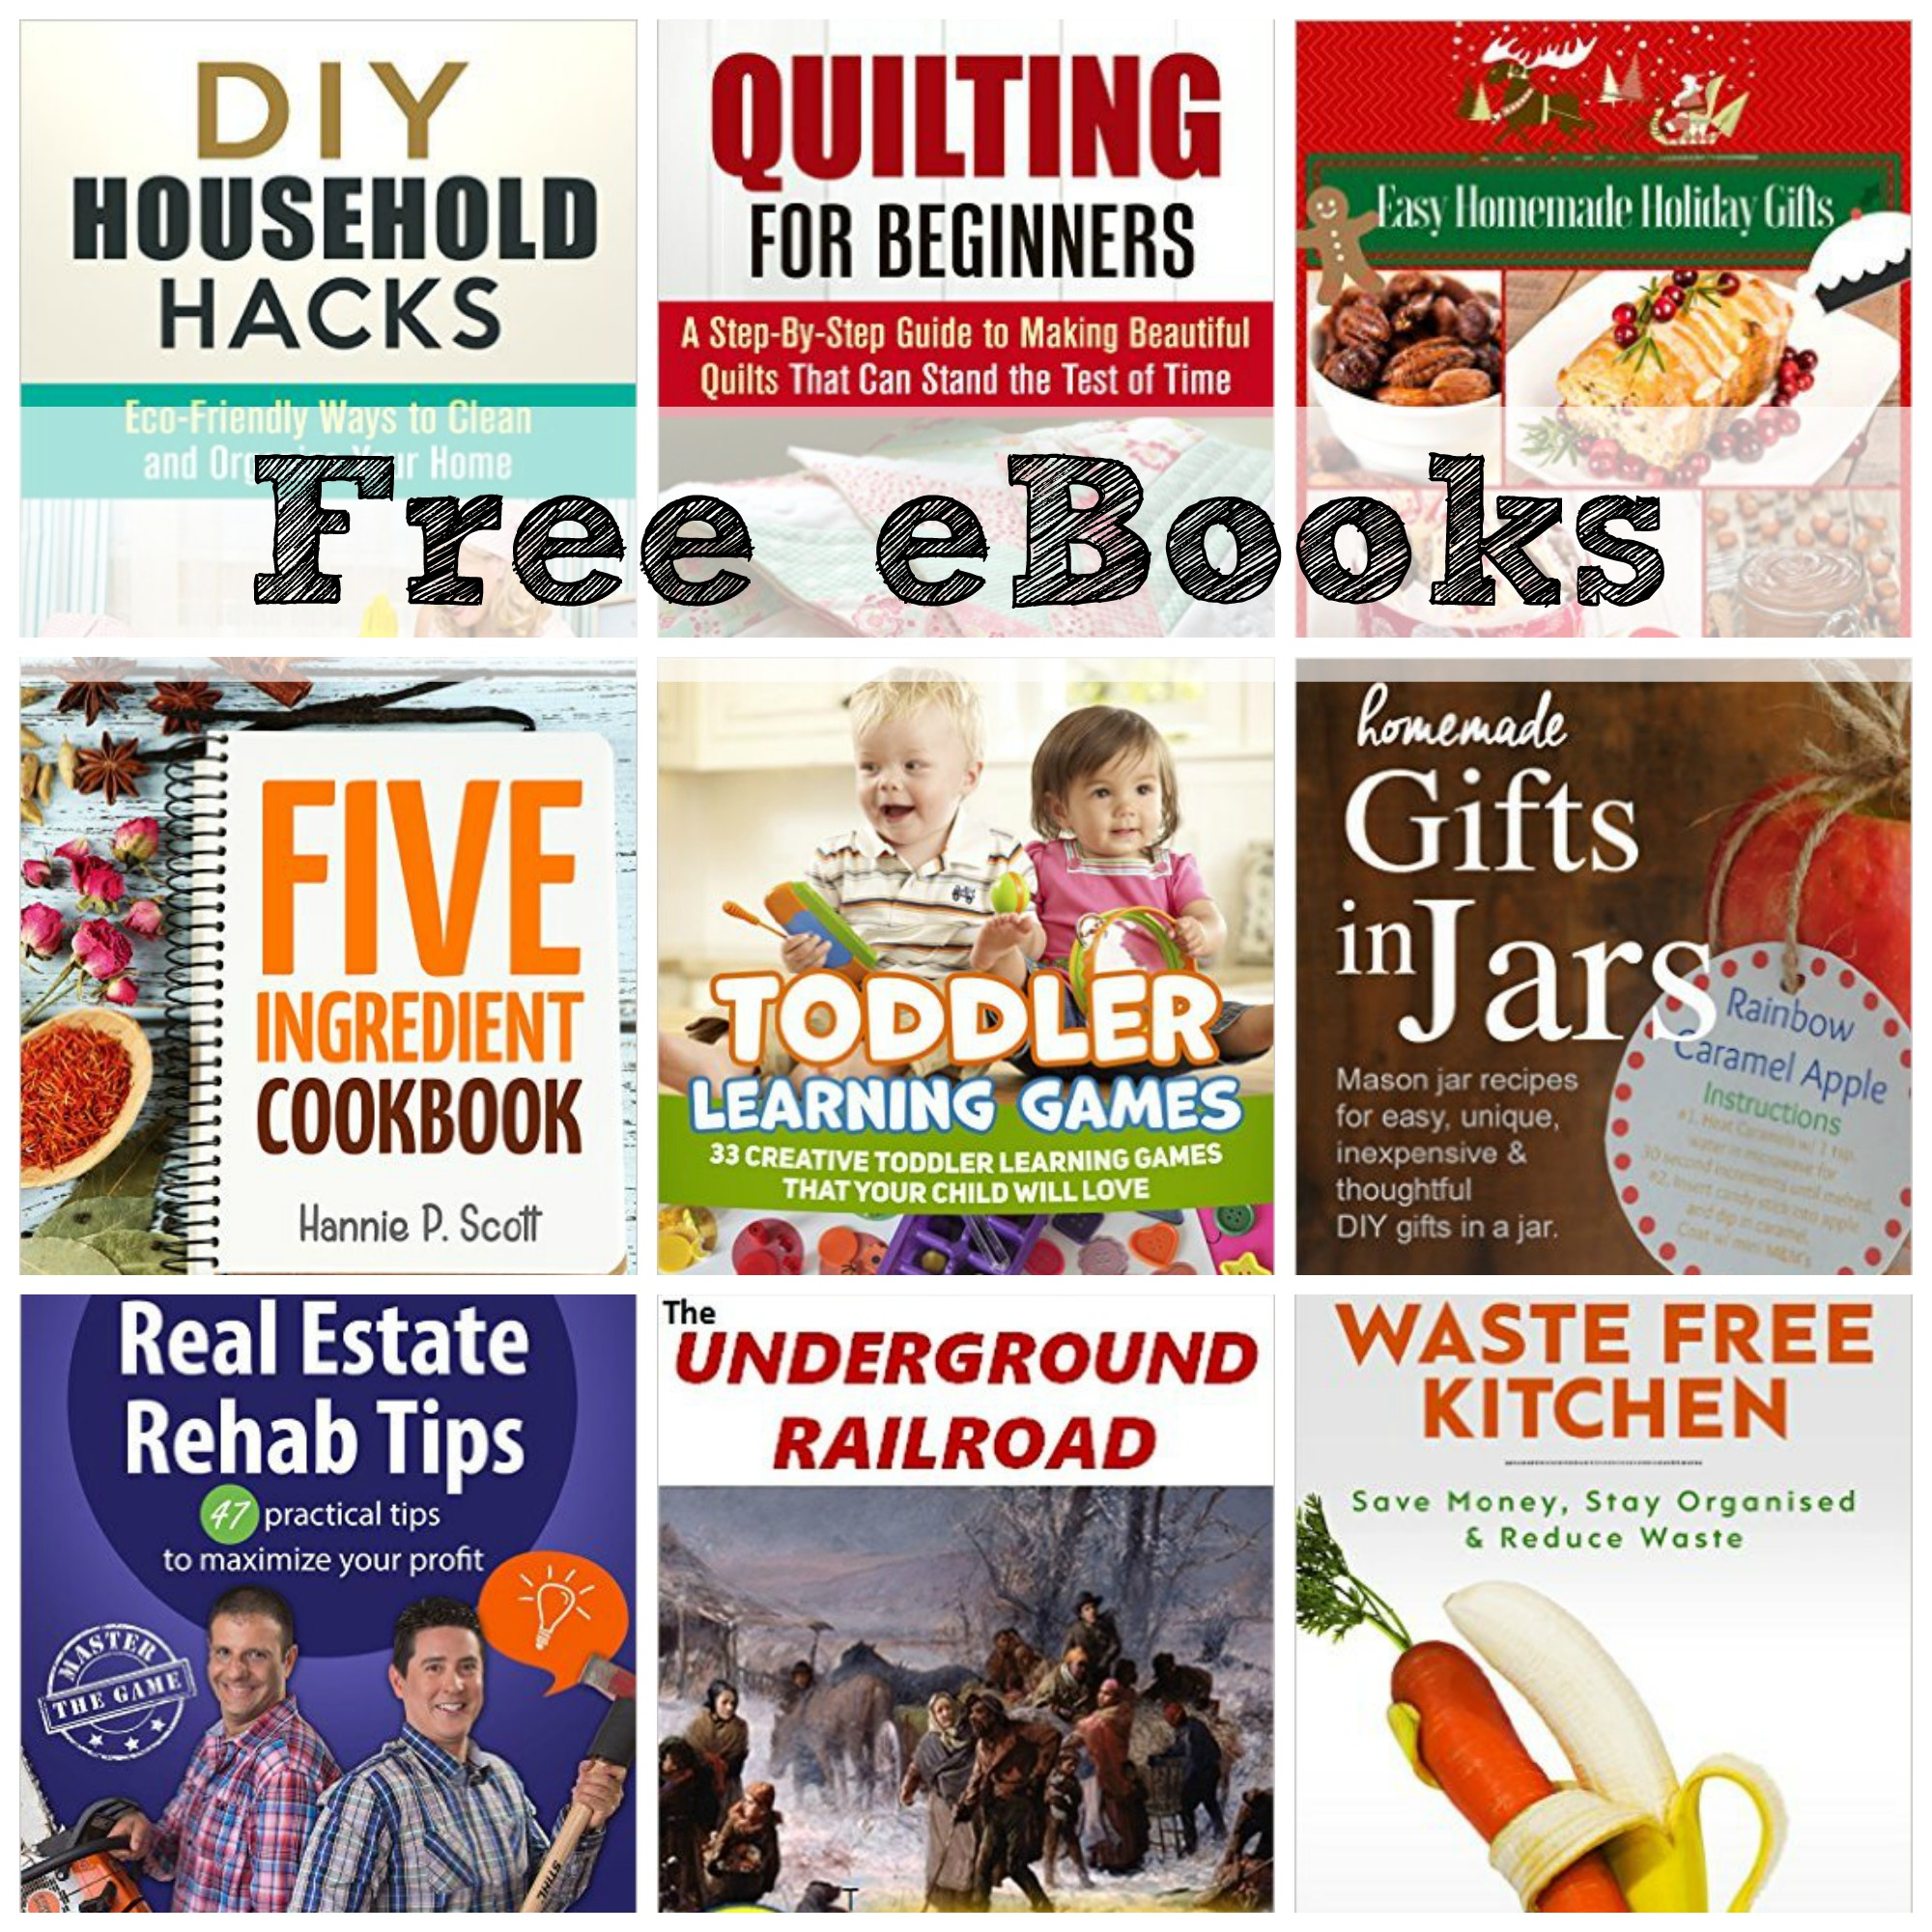 Free Ebooks Toddler Learning Games Rosa Parks Waste Free Kitchen More